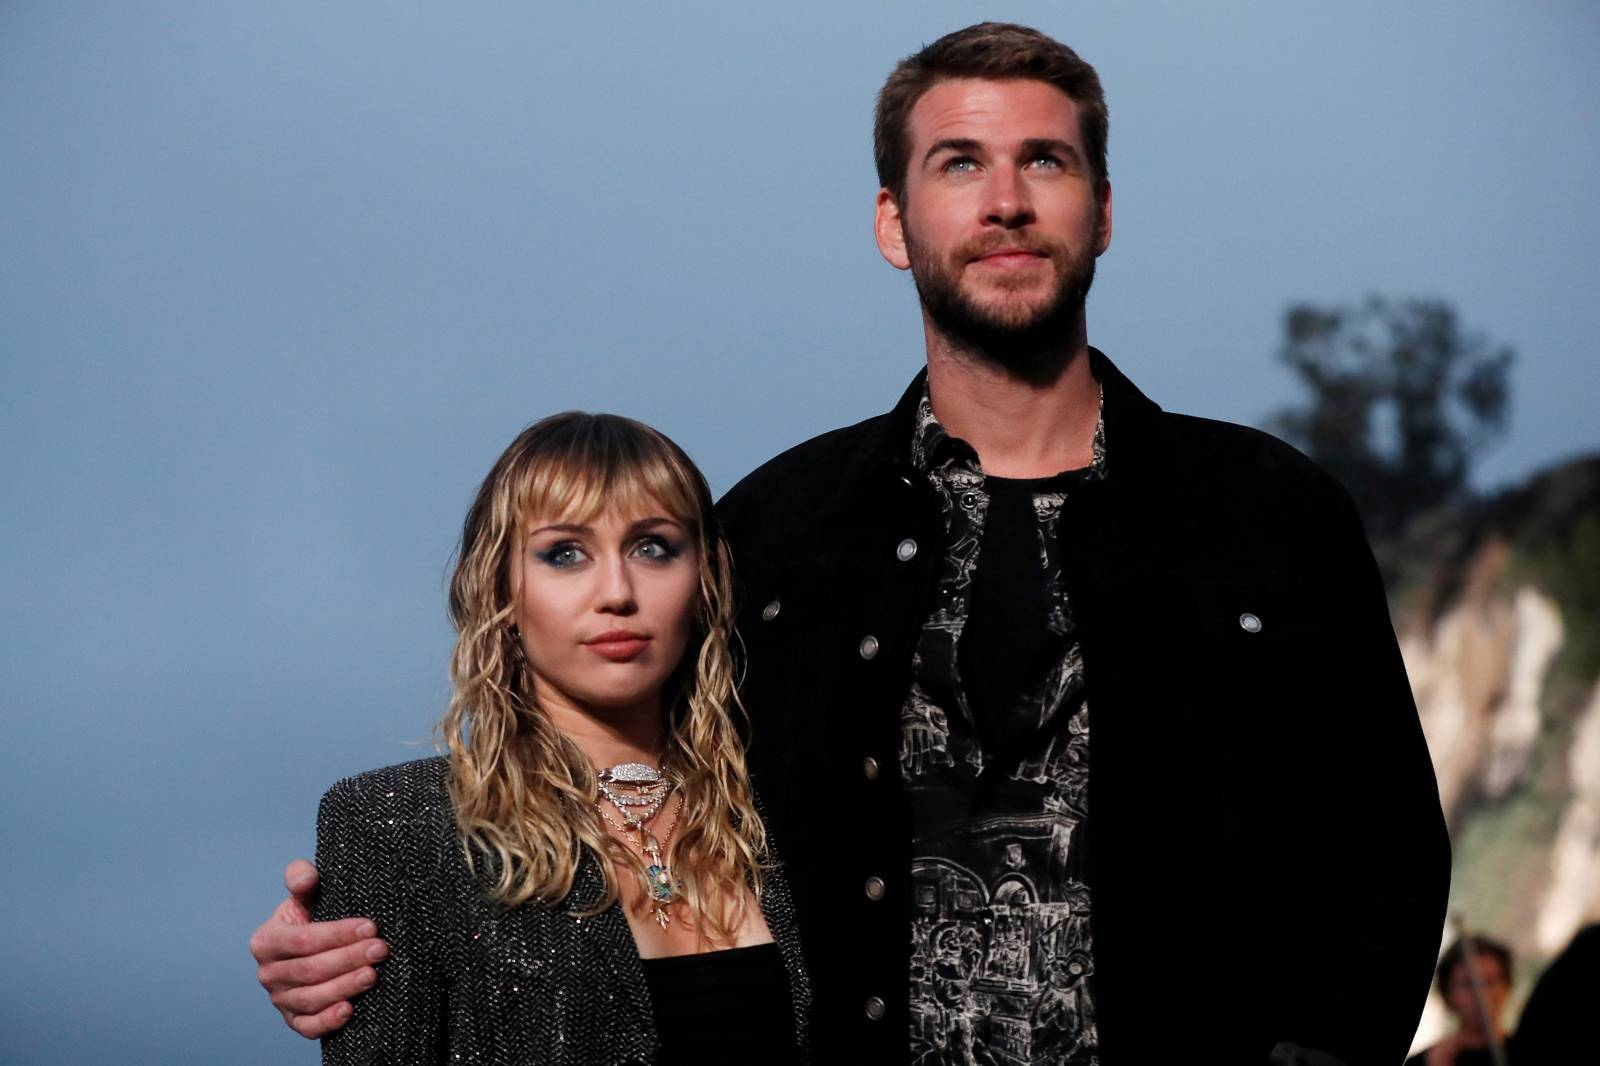 Miley Cyrus and Liam Hemsworth look on at the Saint Laurent Men's Spring/Summer 2020 fashion show at Paradise Cove beach in Malibu